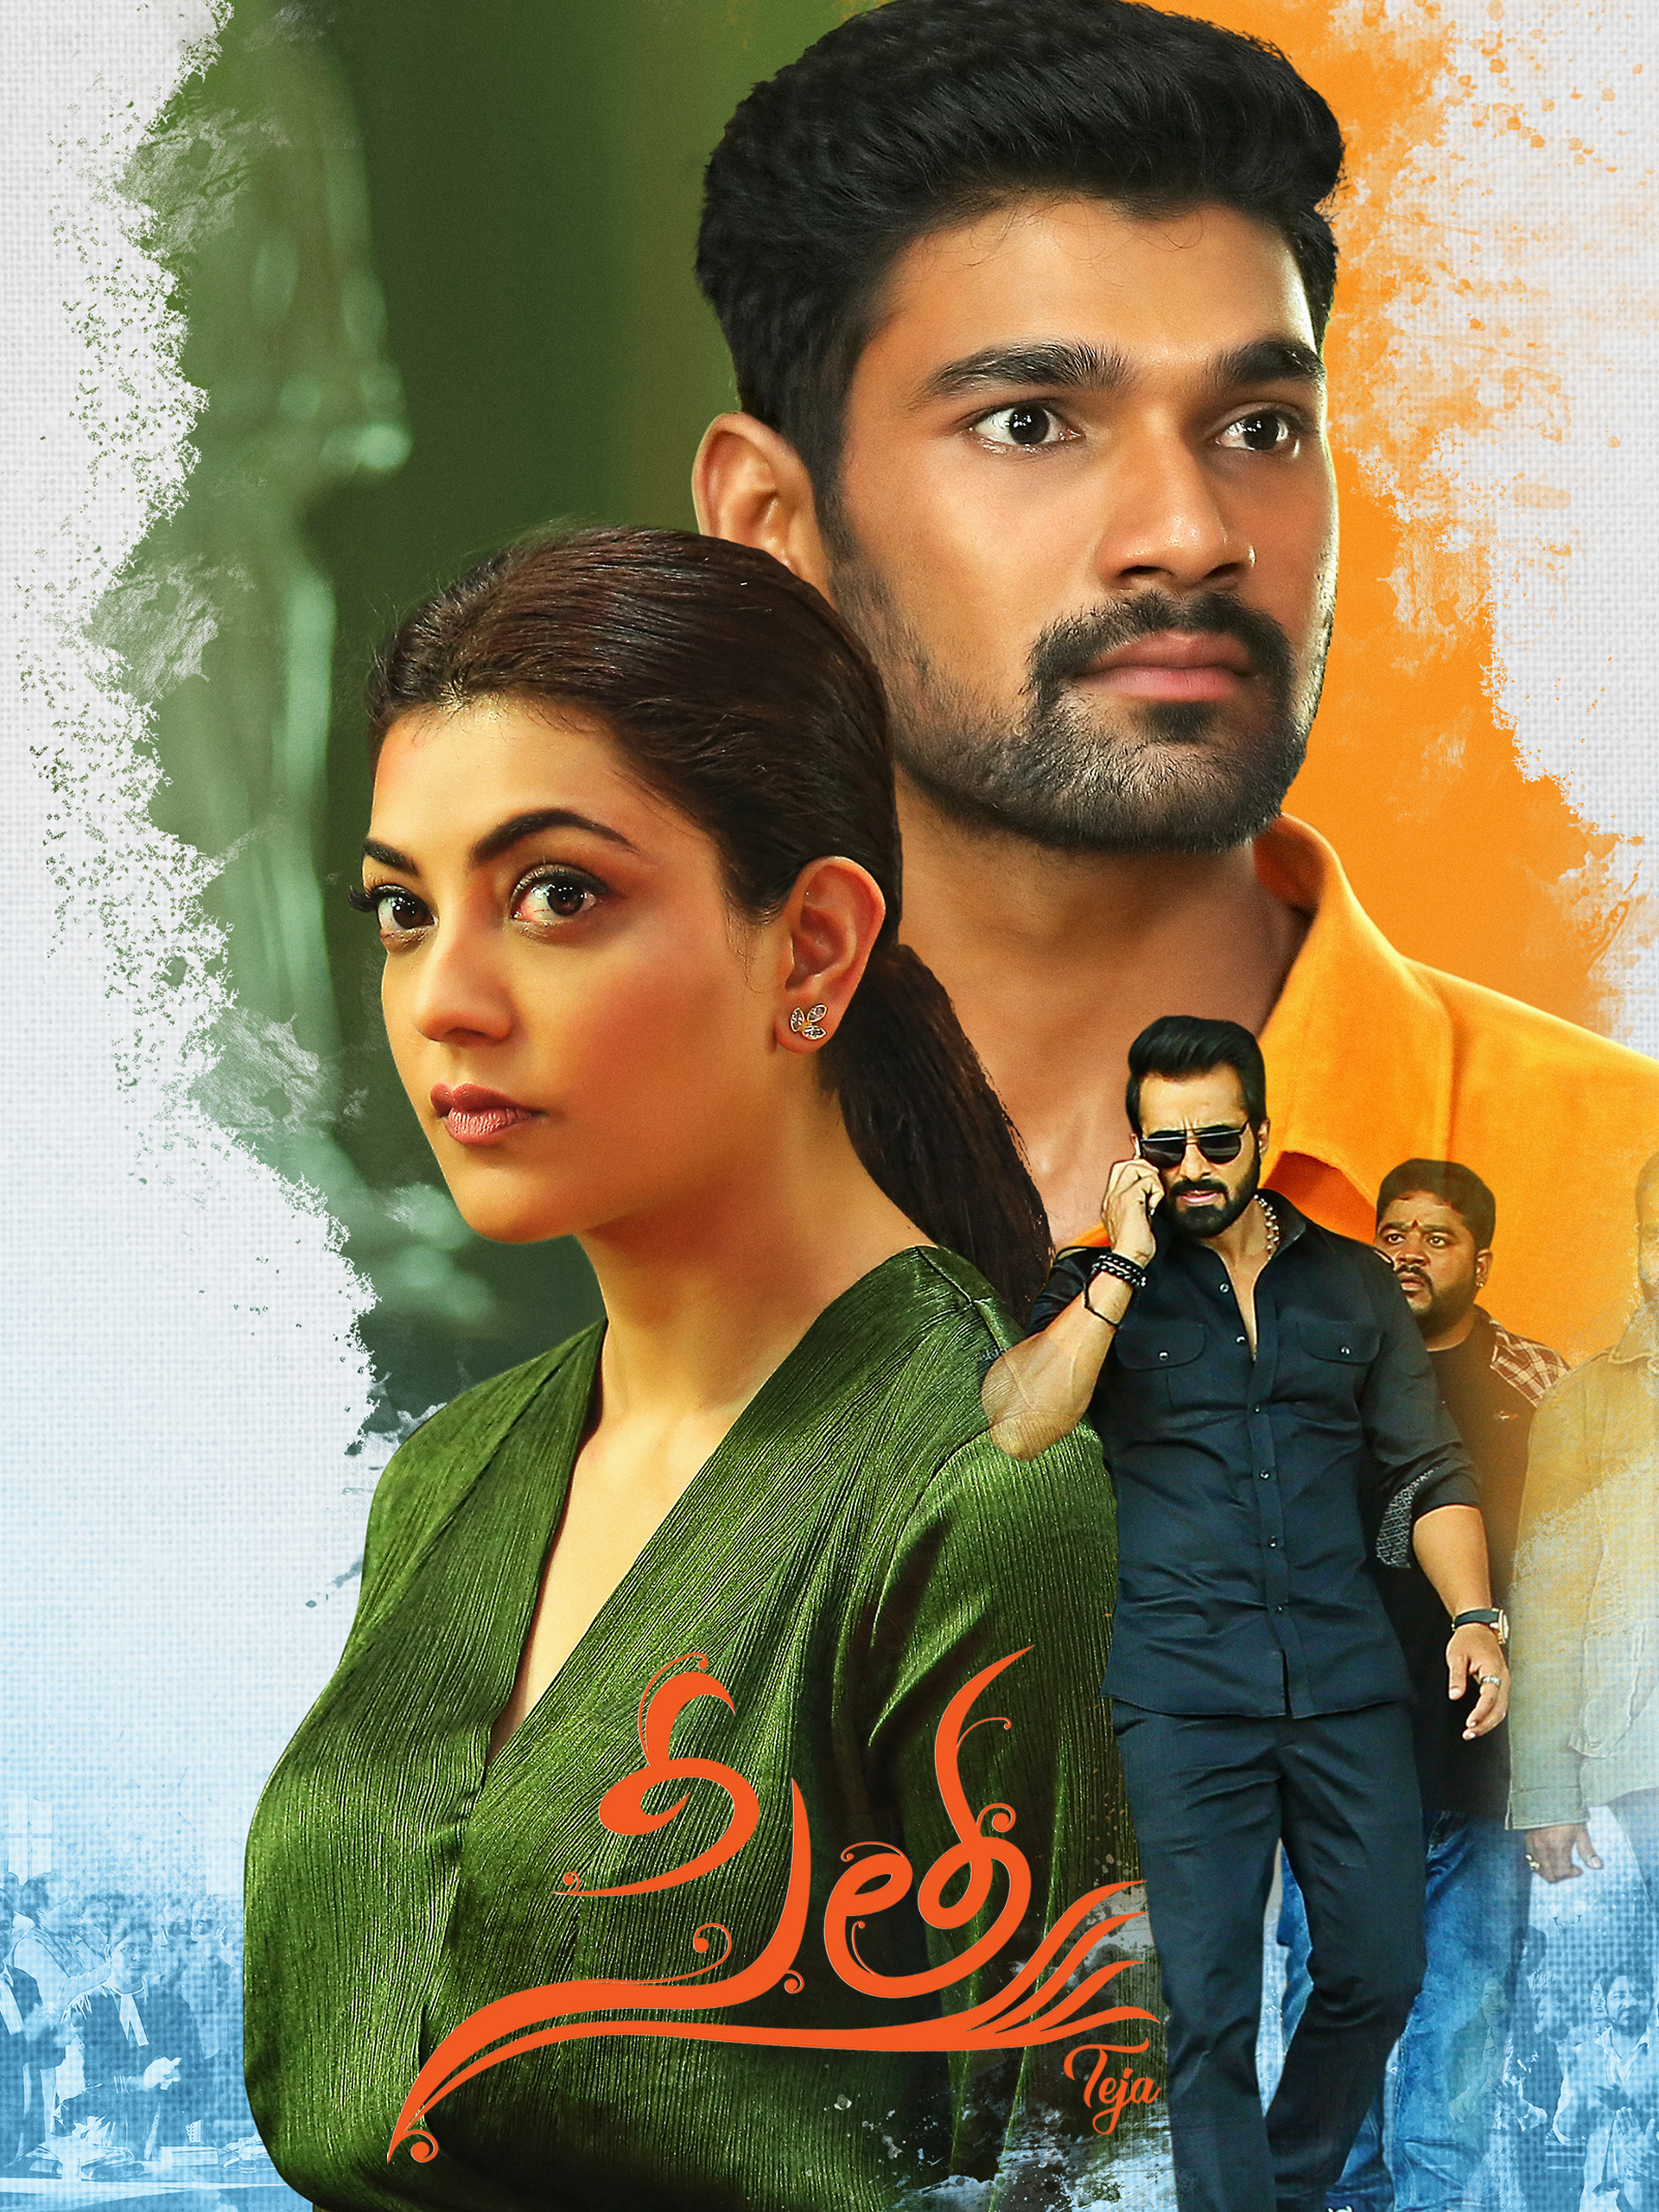 Sita Ram (Sita) 2020 Hindi Dubbed 720p HDRip 900MB Download